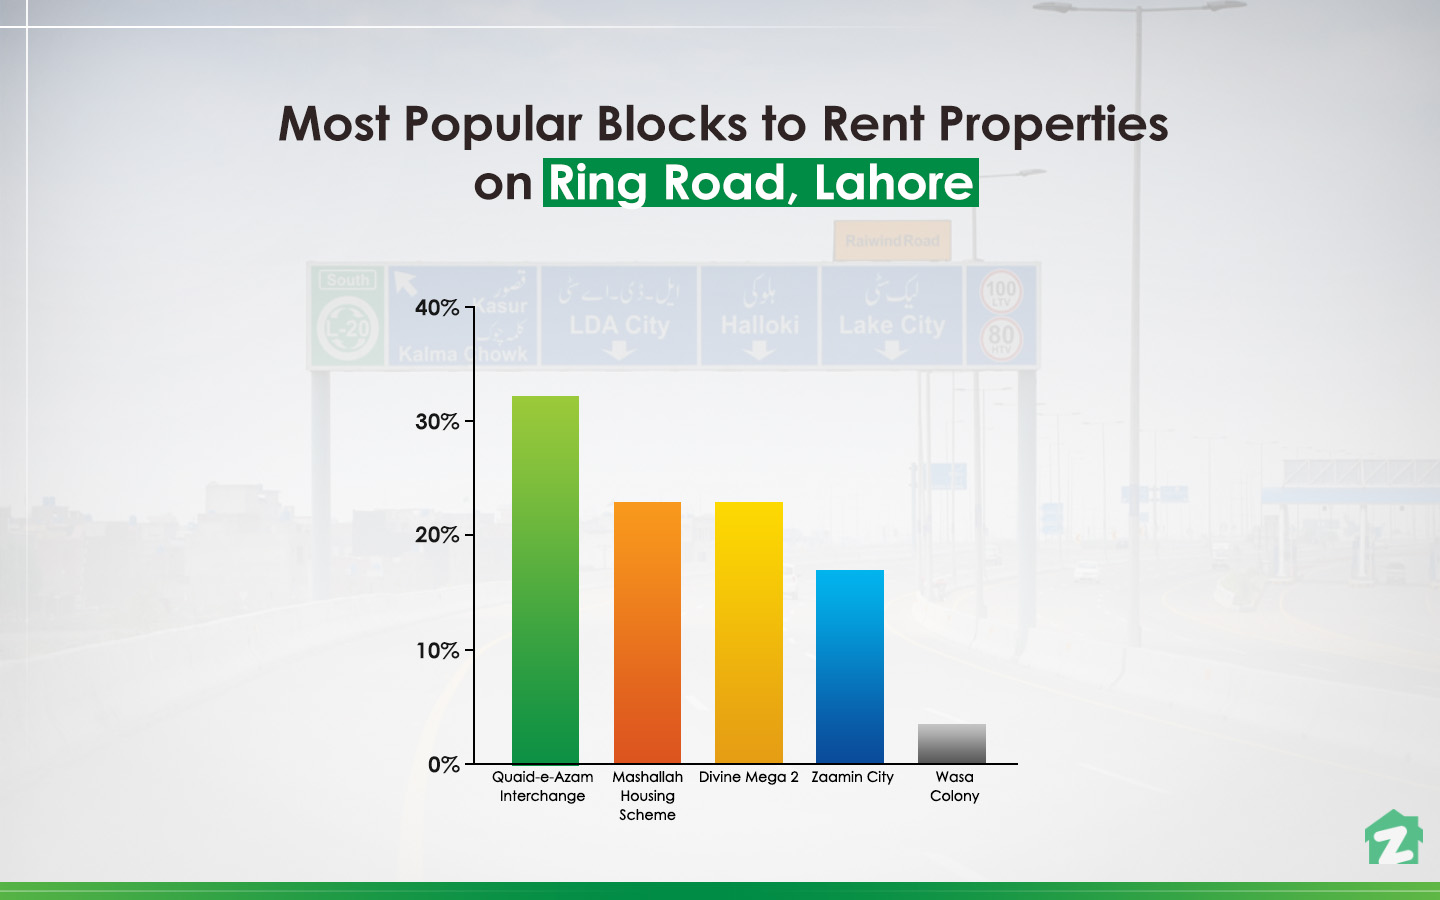 Popular Blocks to Rent a Property on Ring Road, Lahore